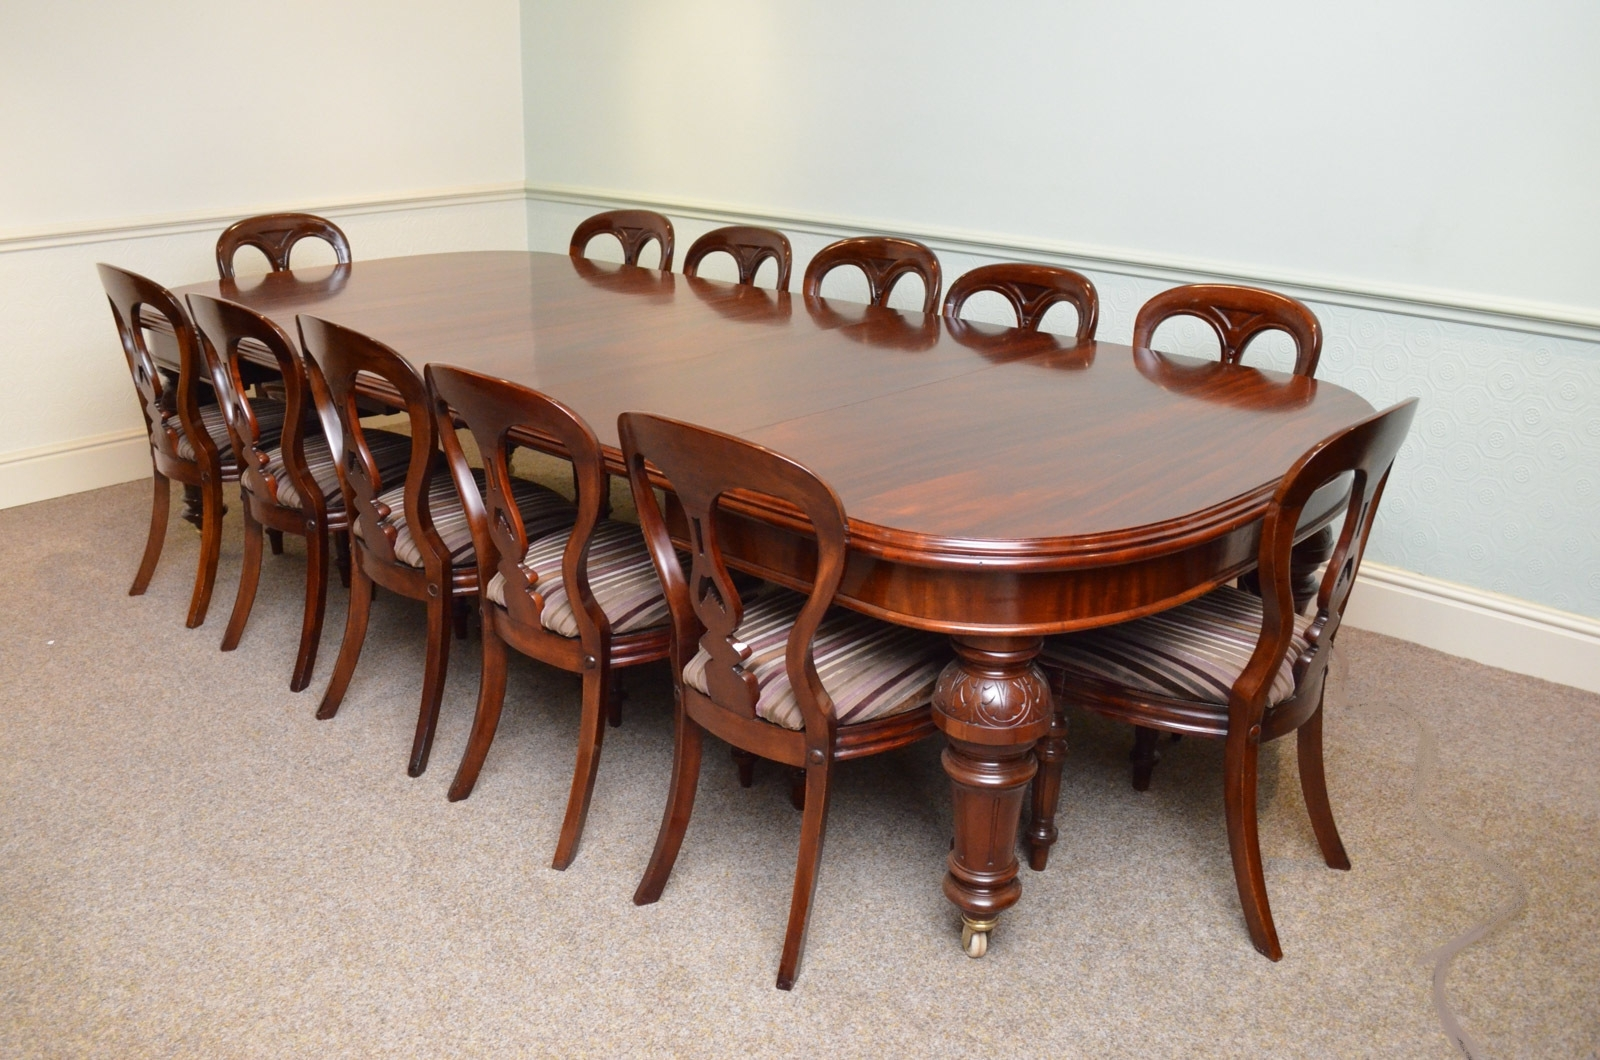 Mahogany Extending Dining Tables And Chairs With Regard To Fashionable Fine Quality Victorian Mahogany Extending Dining Table (View 11 of 25)